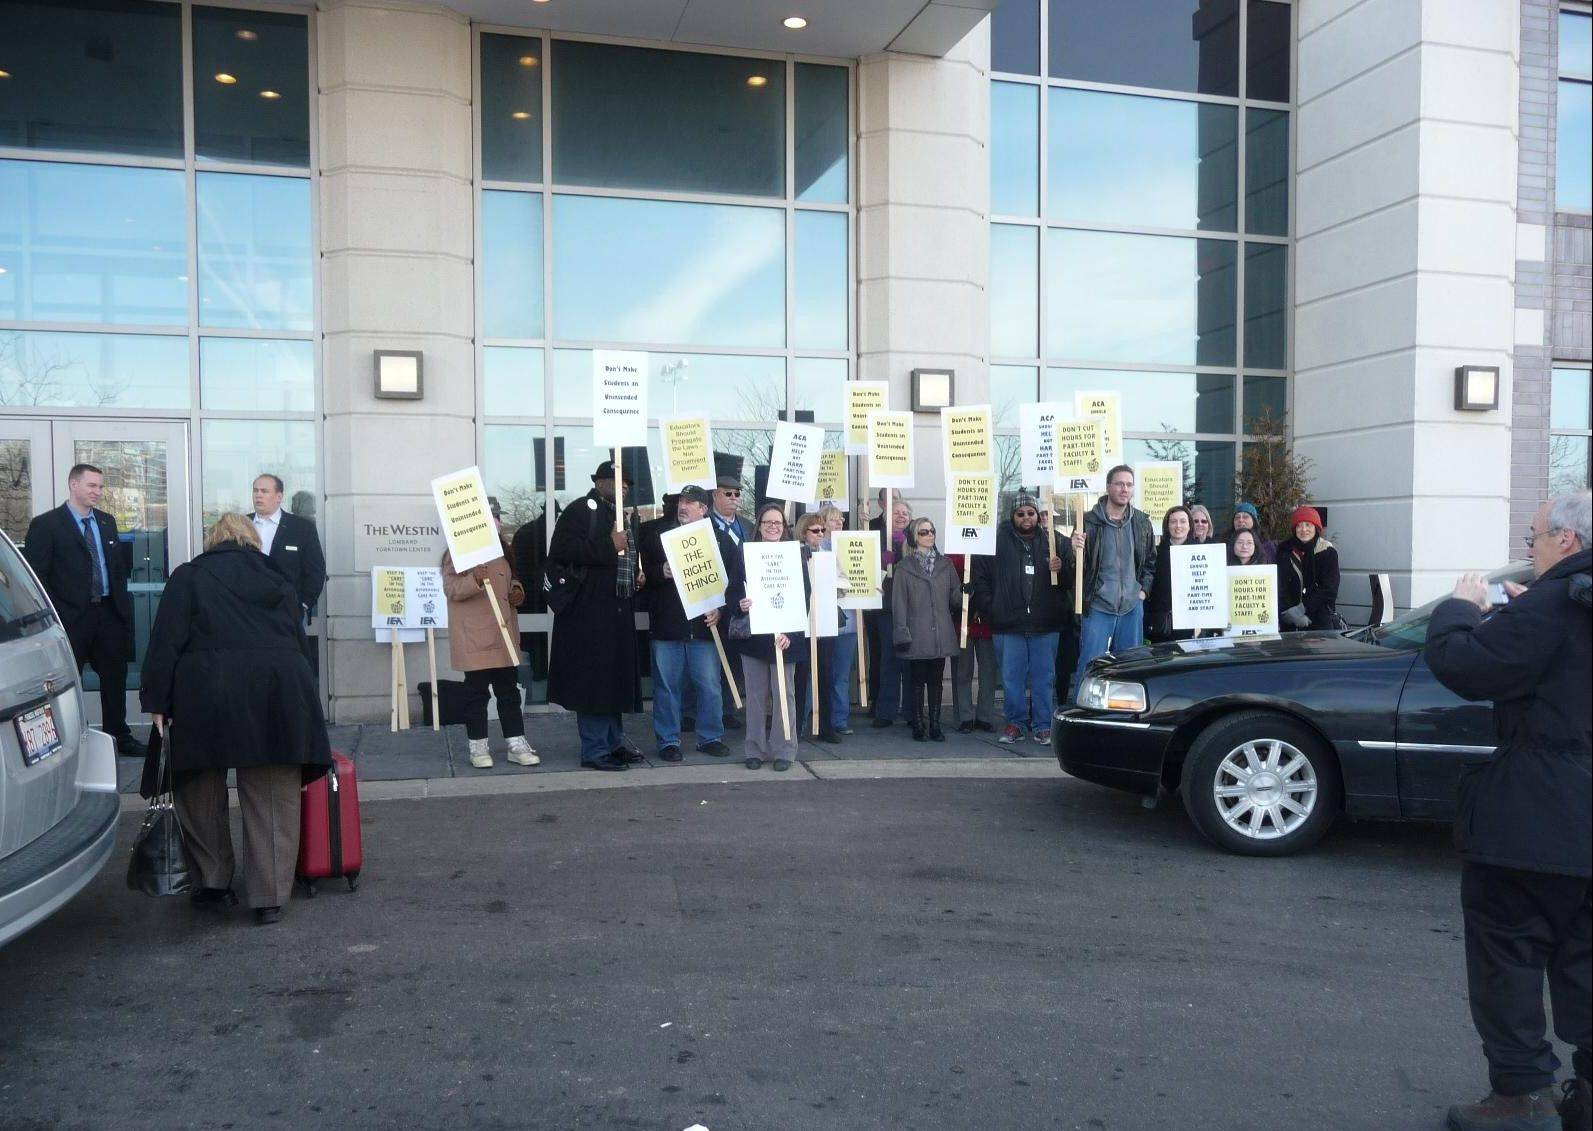 Protesters upset with cuts to part-time faculty teaching hours gather outside the Illinois Council of Community College Presidents meeting on Friday at the Westin Hotel in Lombard.